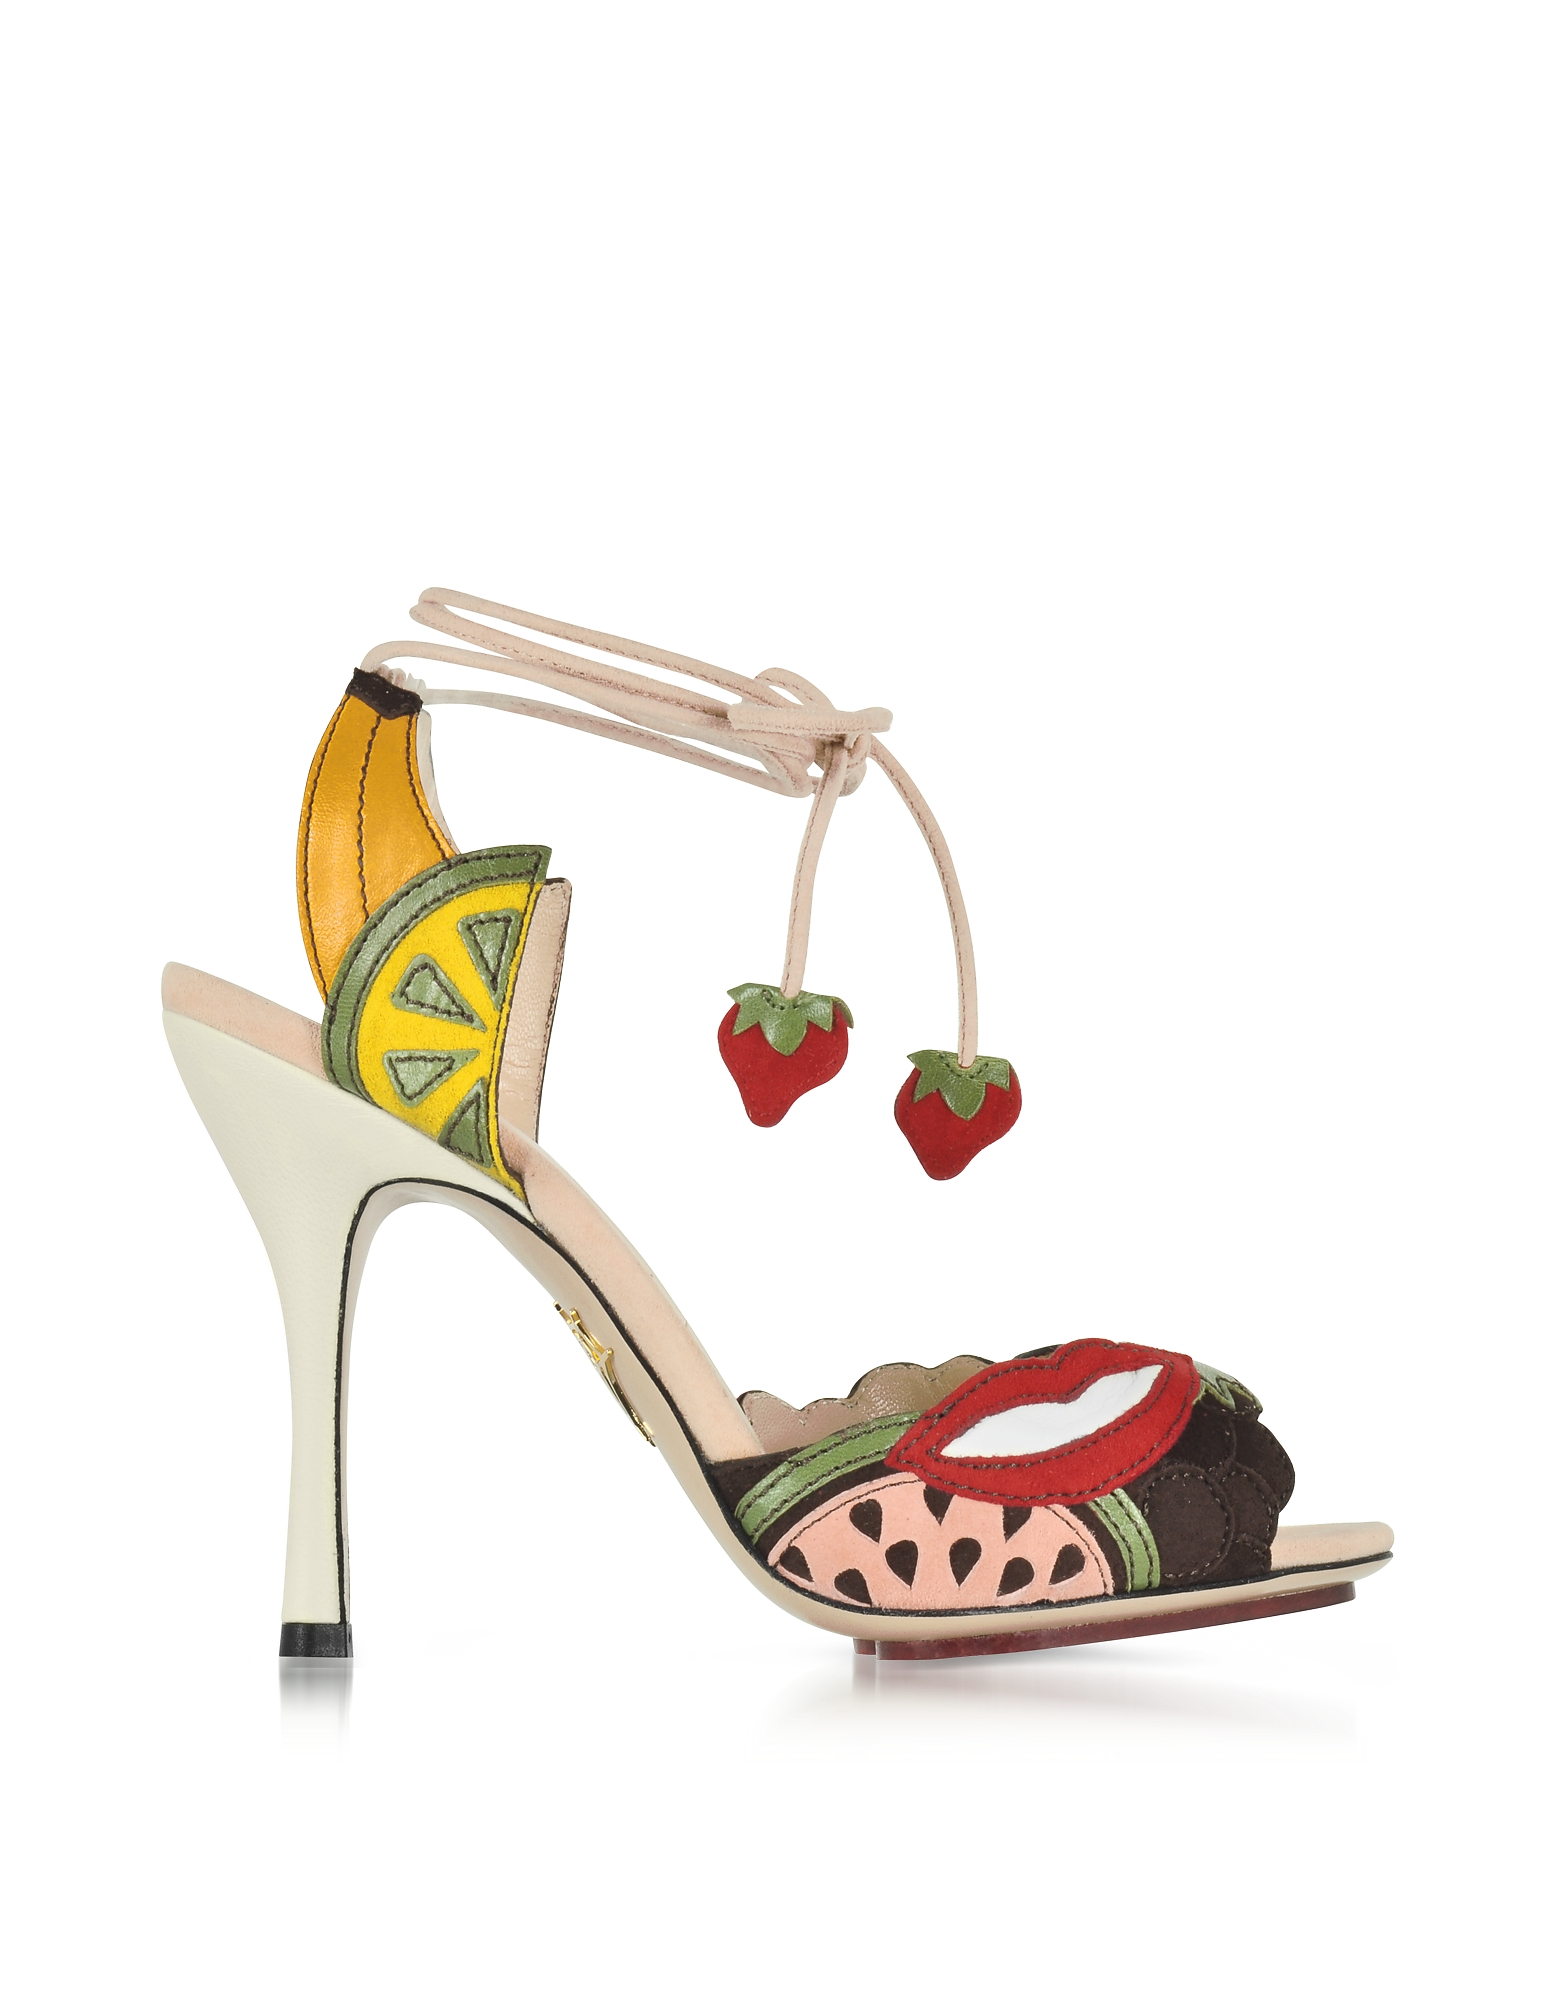 Charlotte Olympia Shoes, Fruit Salad Multicolor Suede Sandal